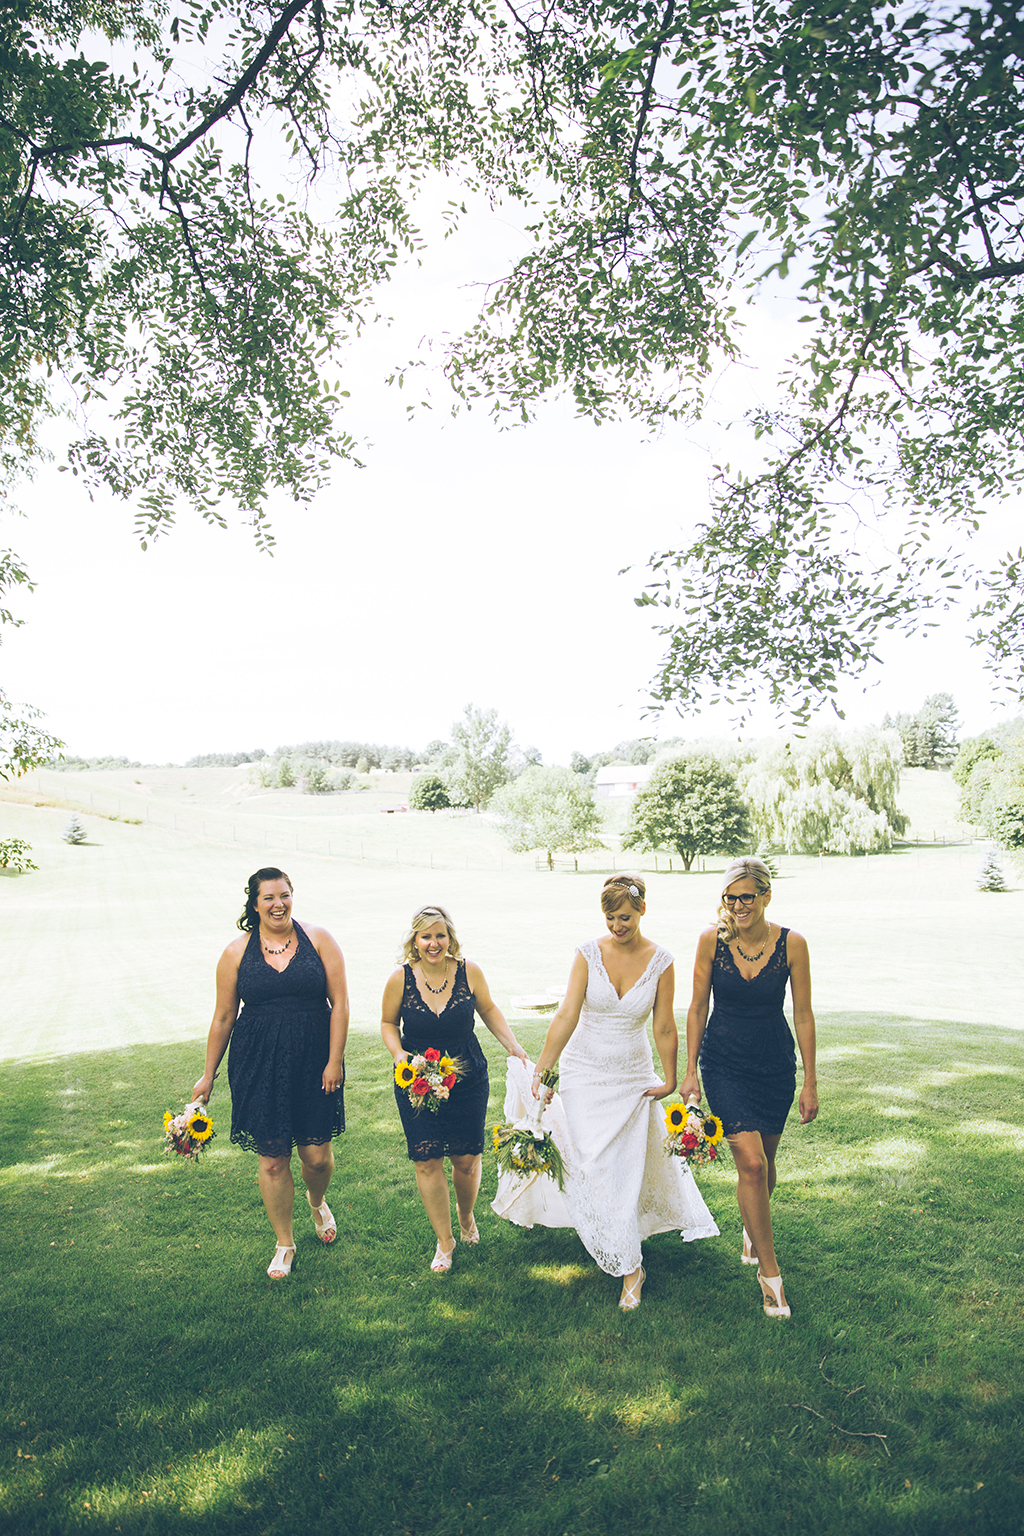 KaitlinRyan_WeddingParty-16